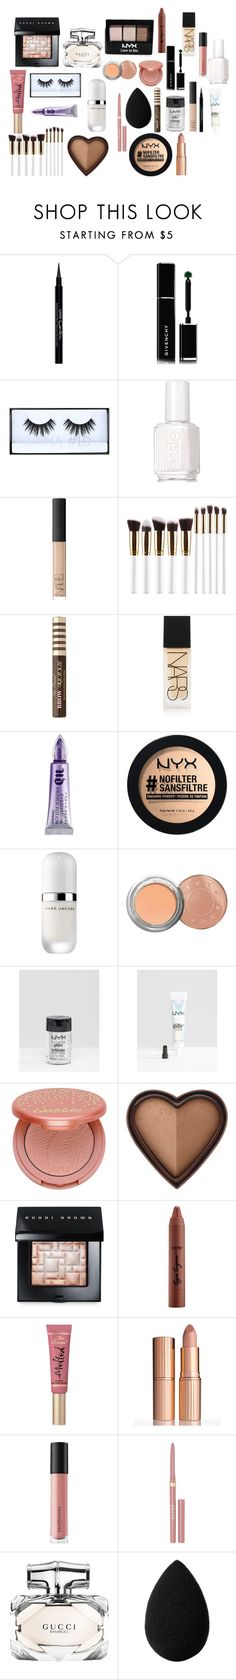 """Beautiful"" by groschsarah on Polyvore featuring beauty, Givenchy, NYX, Huda Beauty, Essie, NARS Cosmetics, Too Faced Cosmetics, Urban Decay, Marc Jacobs and Becca"